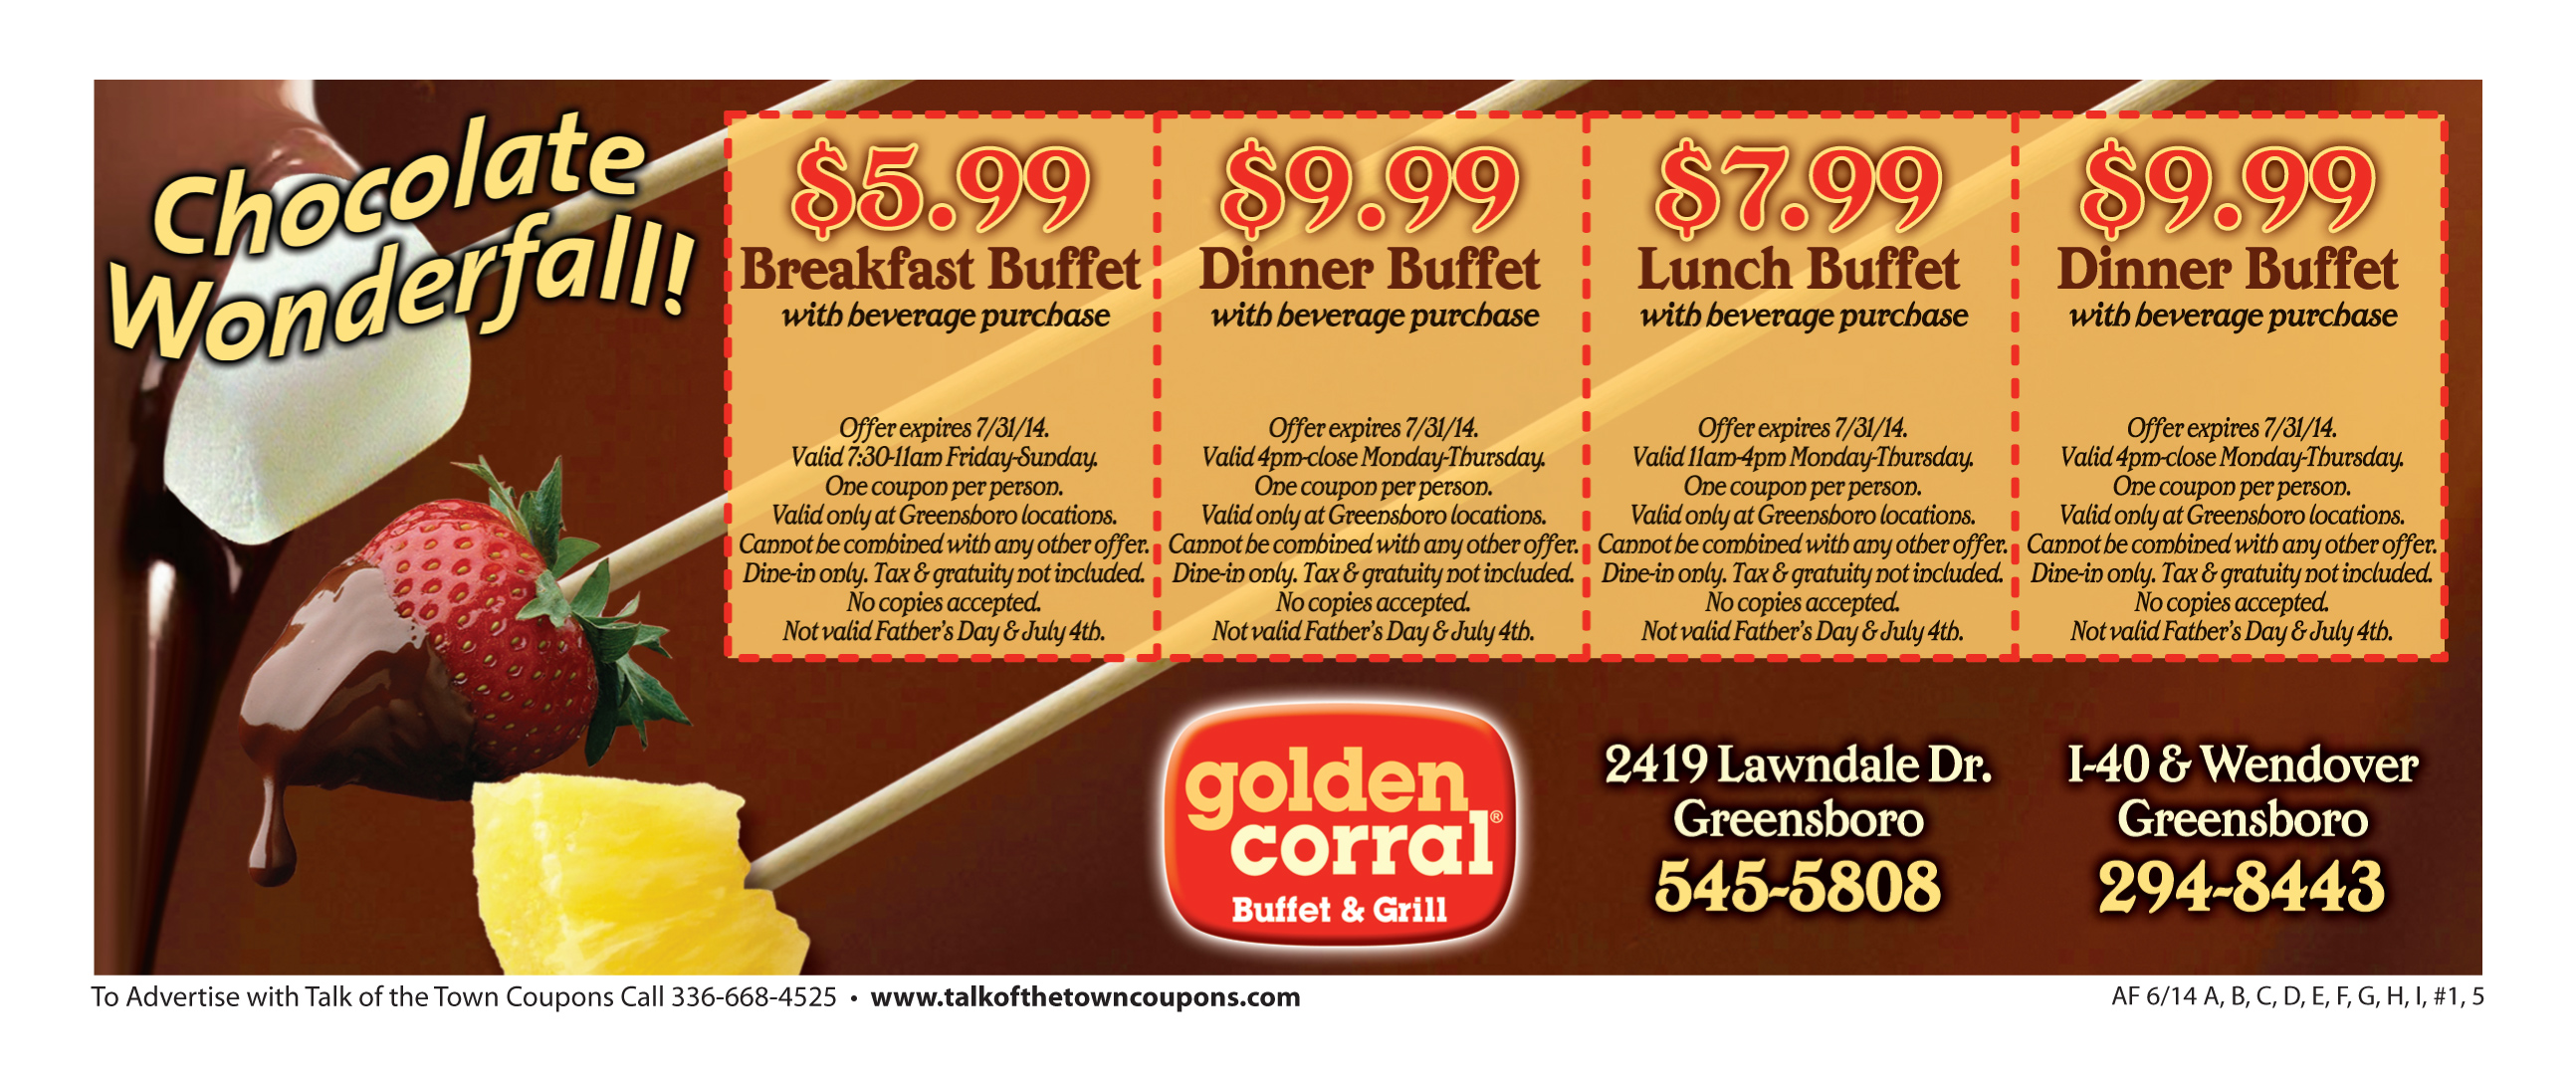 Golden Corral Booklet Offer Image